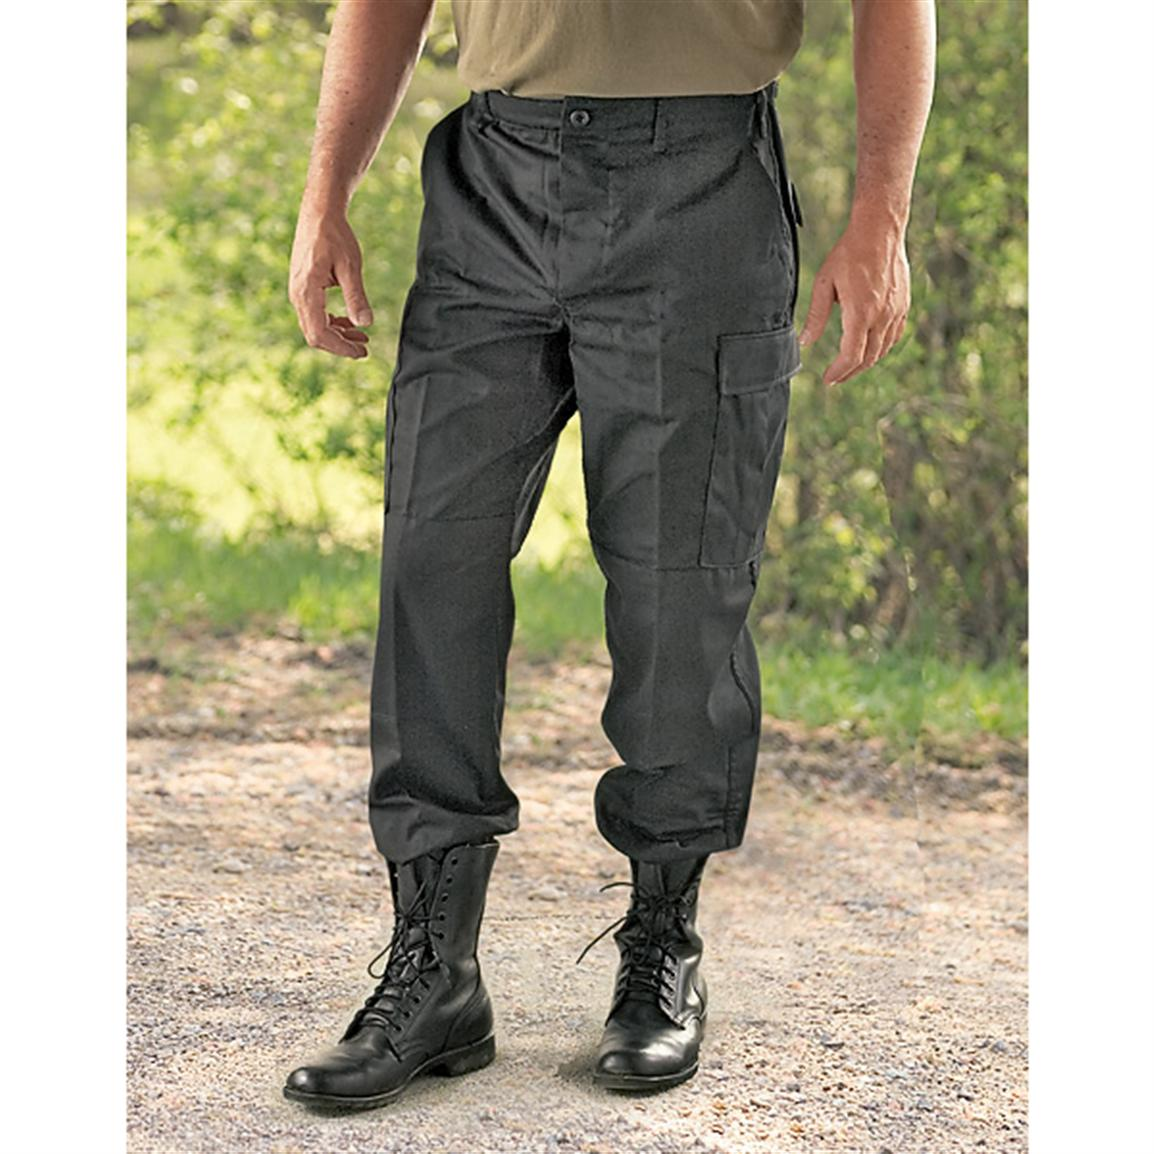 Cotton Rip-Stop or Cotton / Polyester Twill Pants in Black